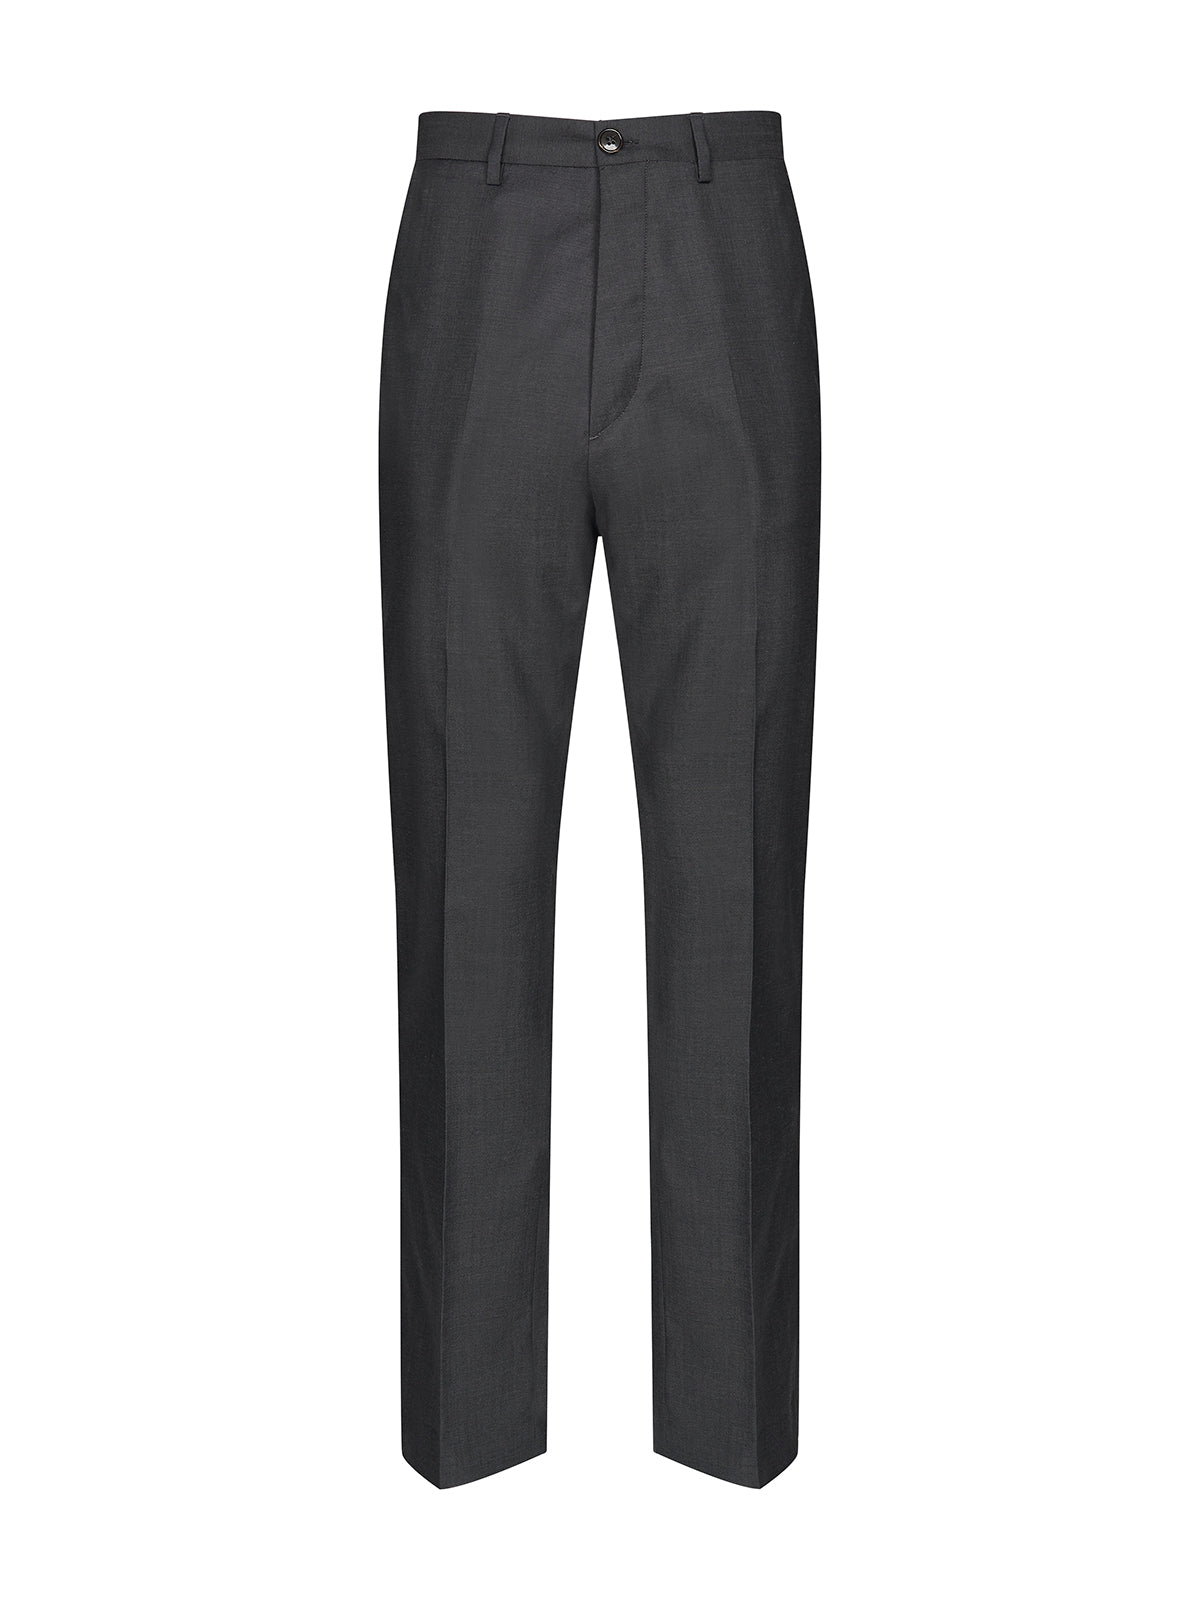 Prince trousers in grey